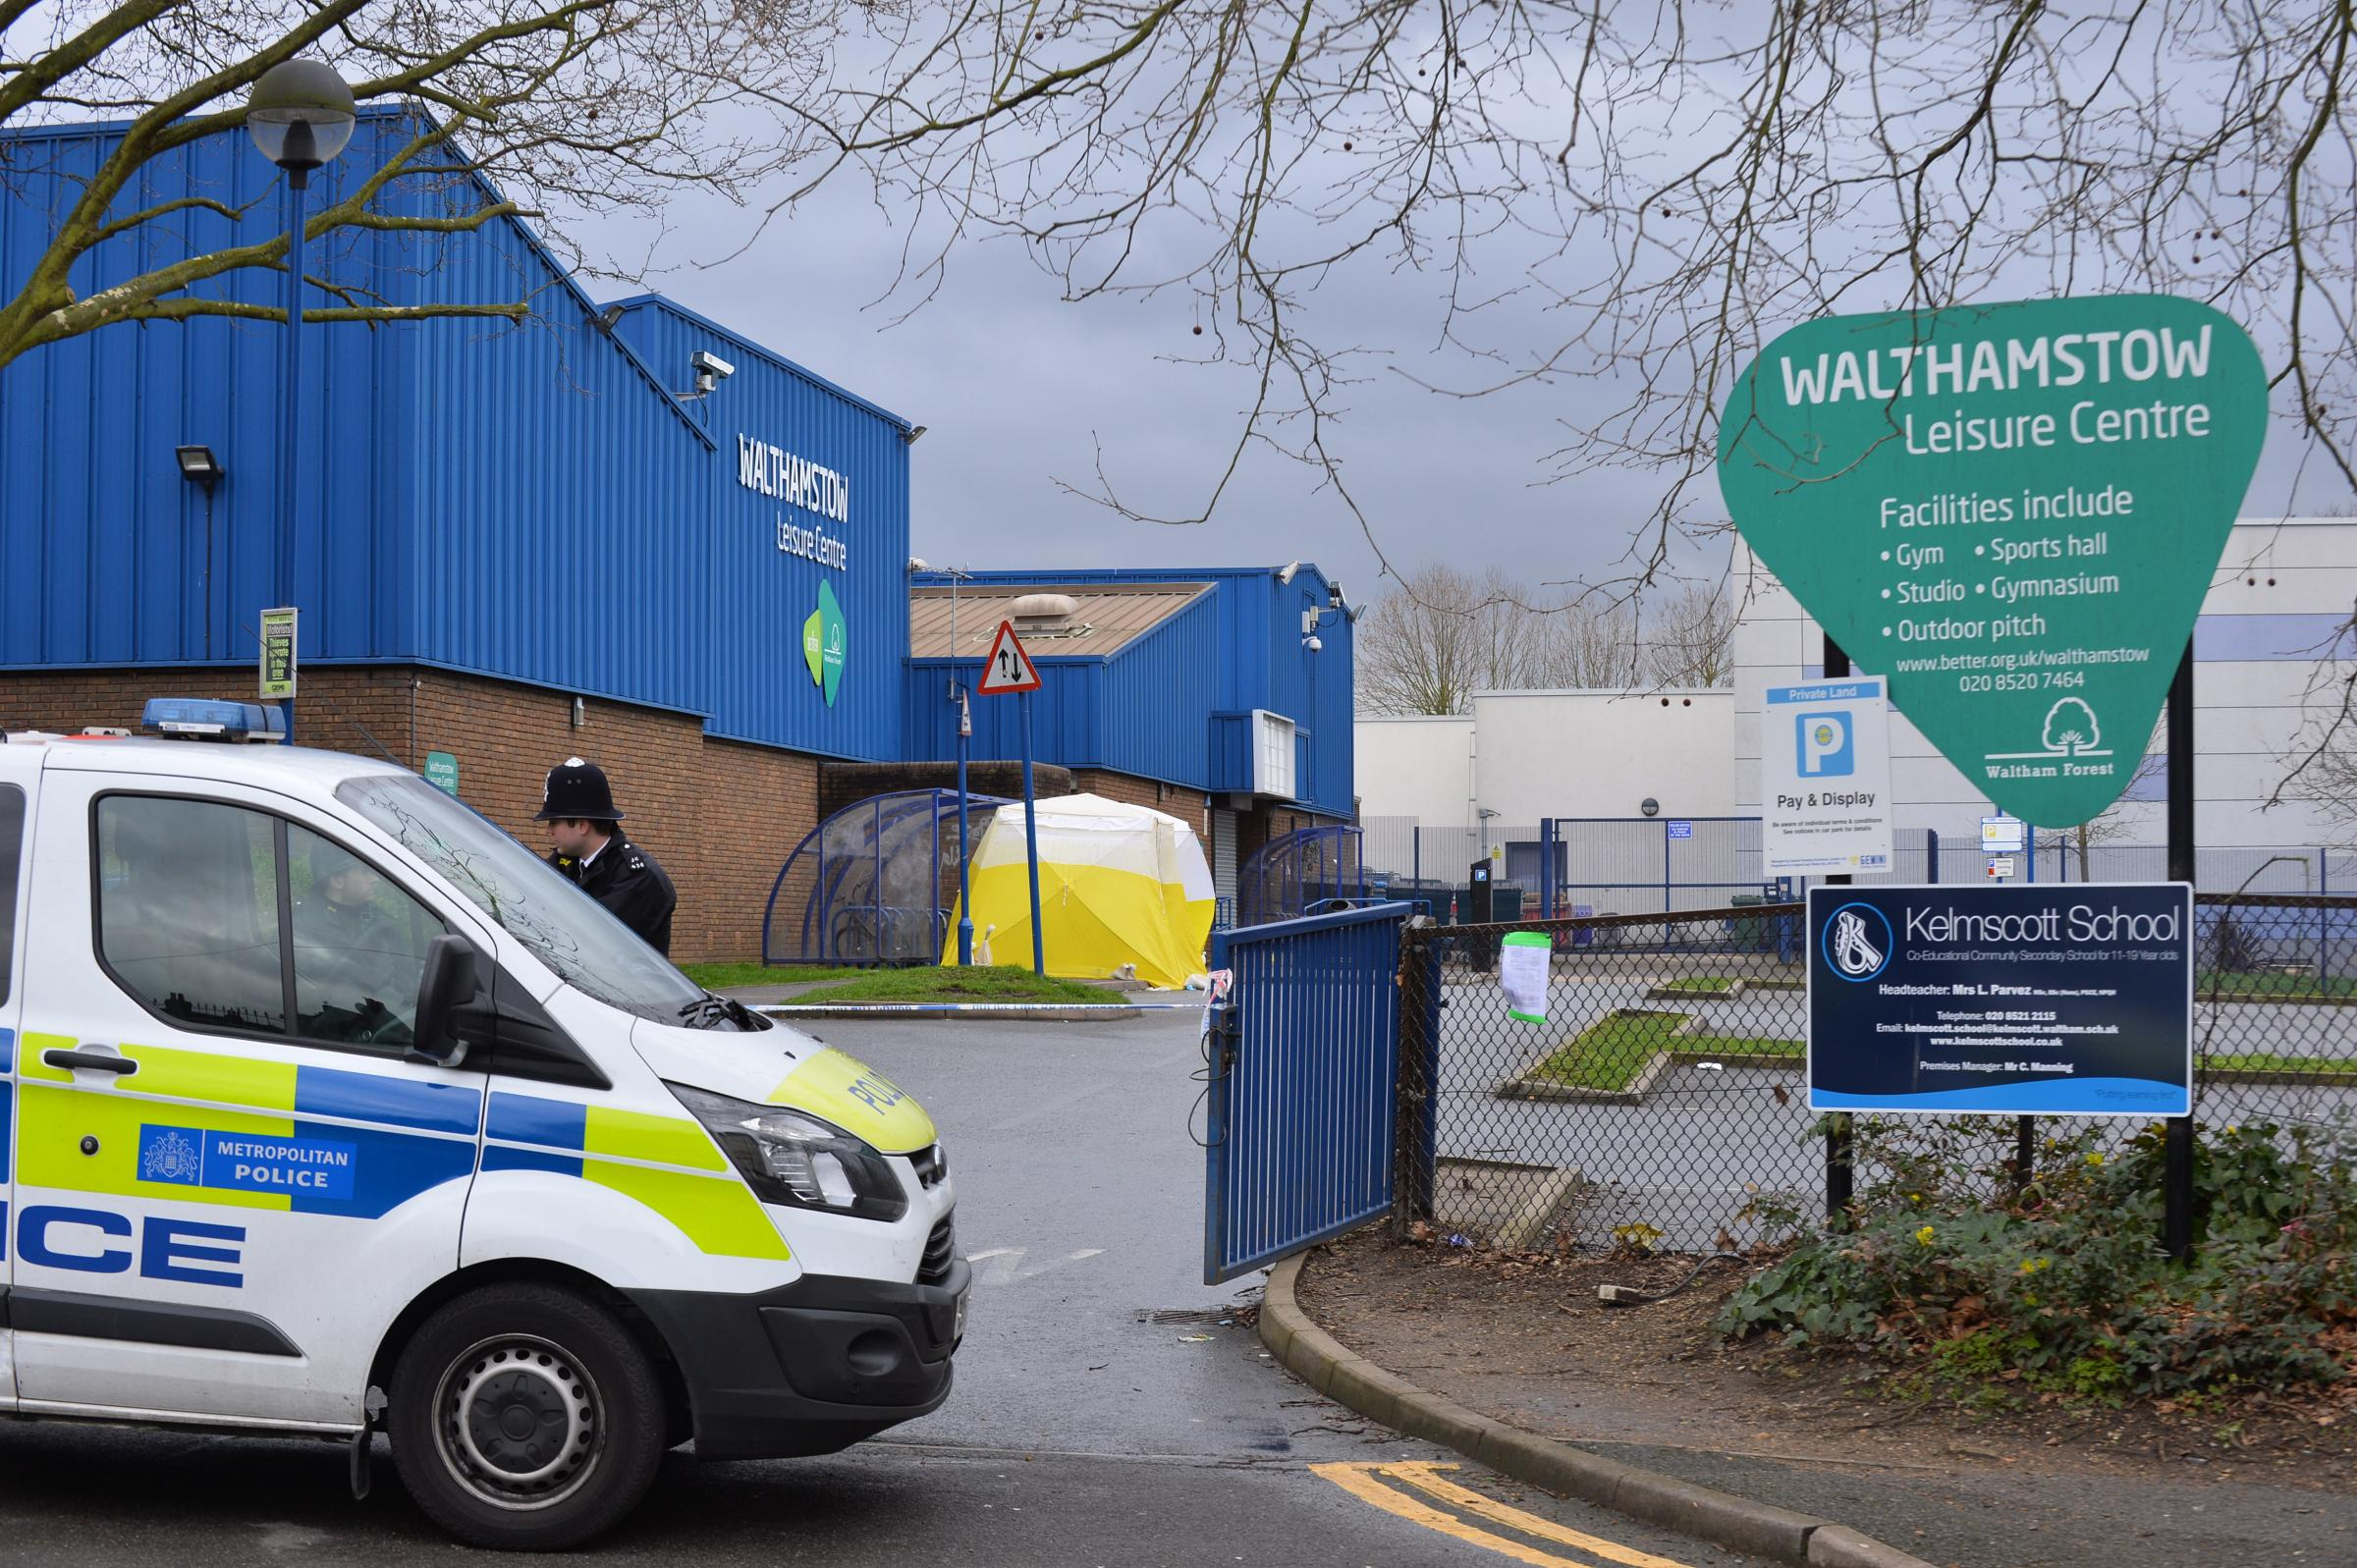 The boy was found suffering from a gunshot wound outside Walthamstow Leisure Centre